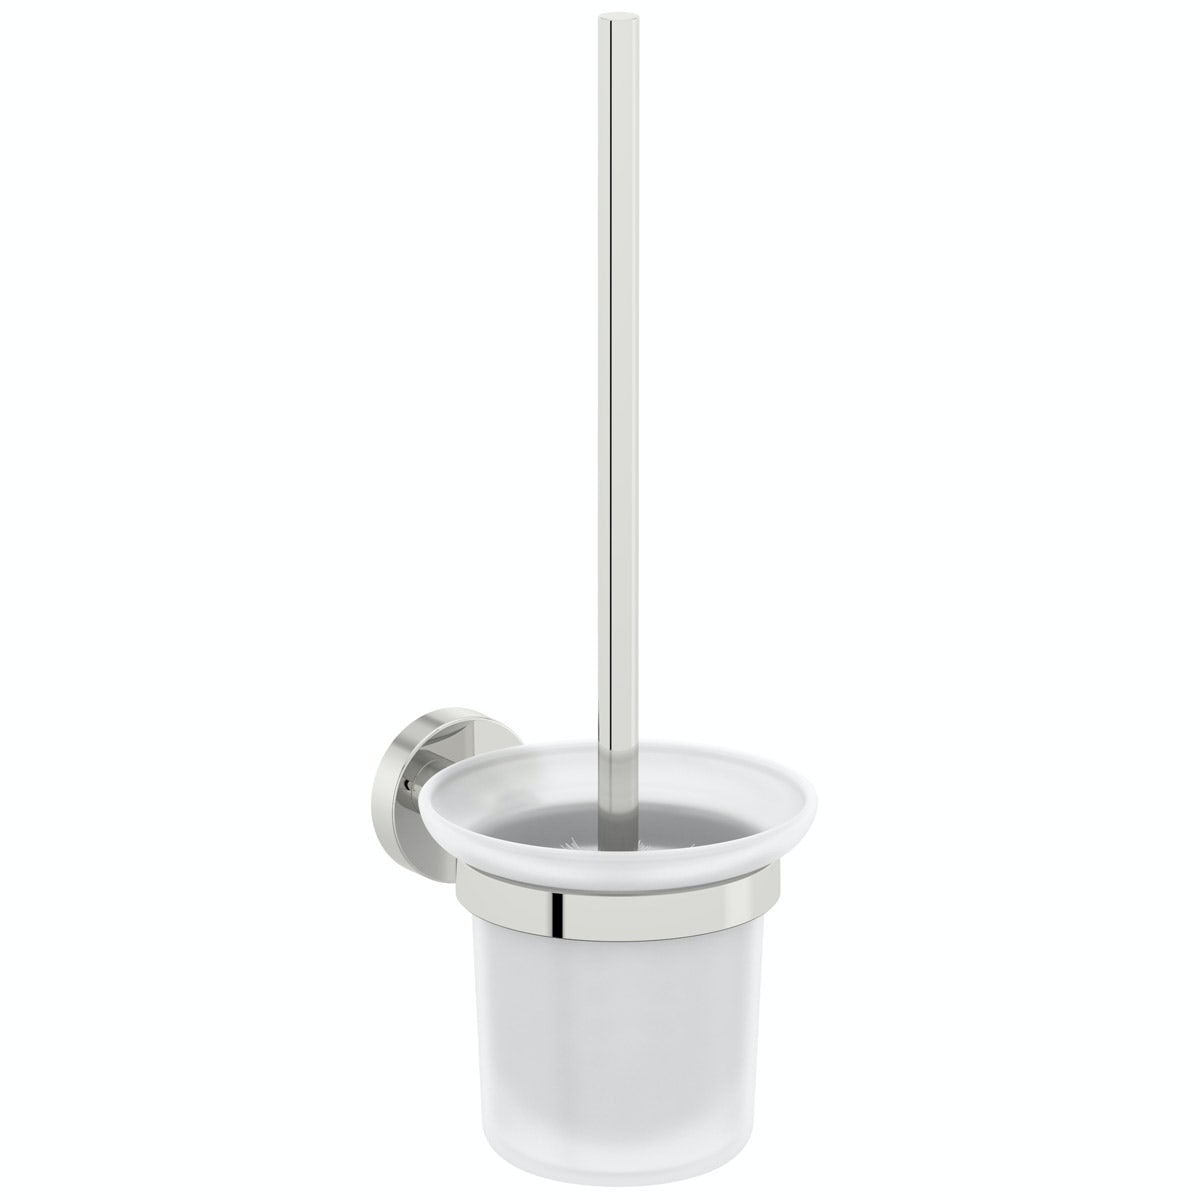 Orchard Lunar toilet brush and holder